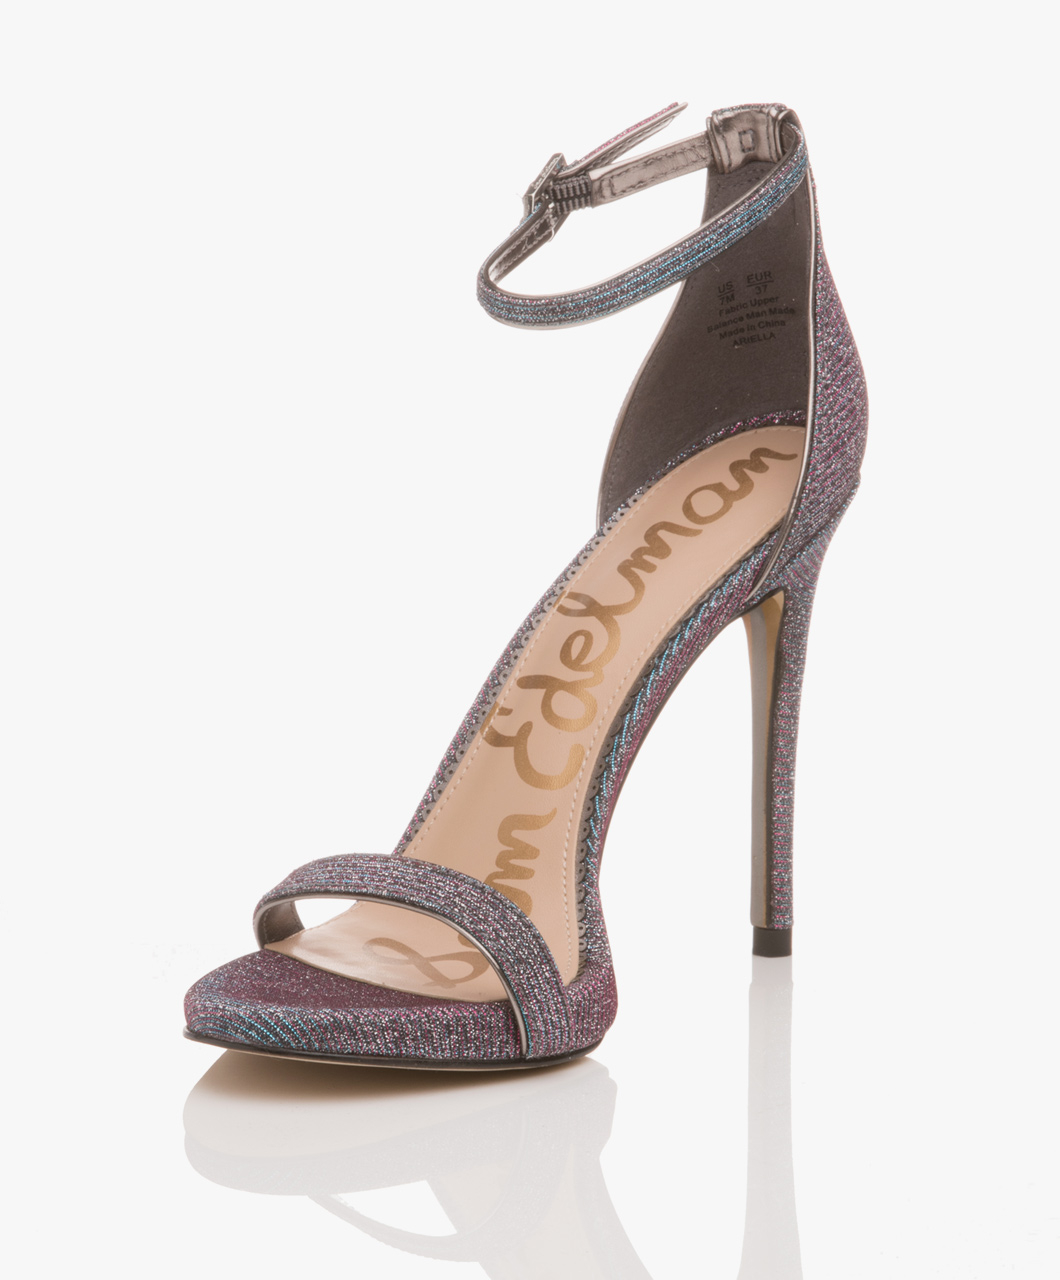 599b2be881e Sam Edelman Ariella Flash Glitz Ankle Strap Sandals - Pink/Blue ...